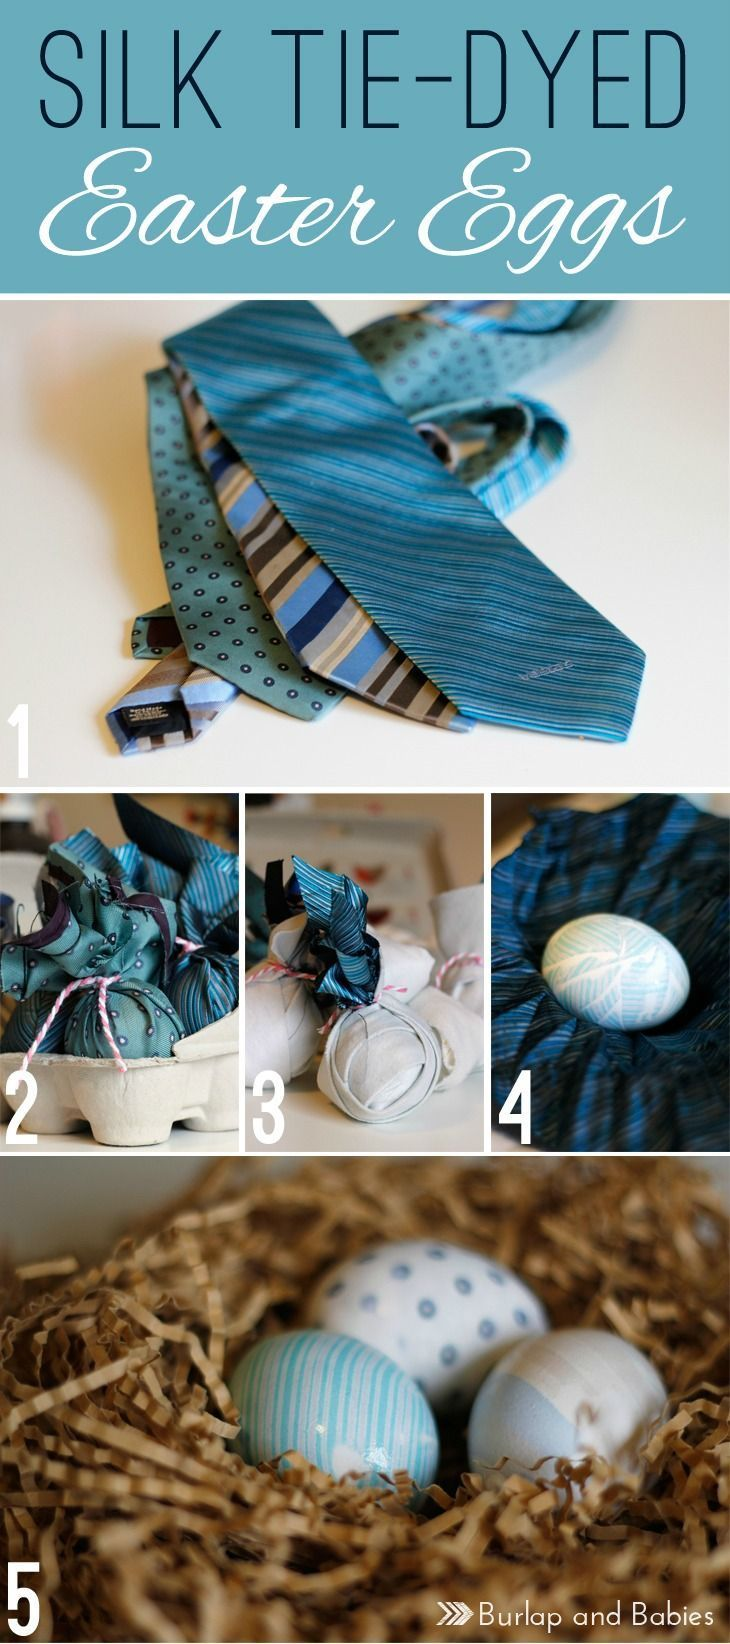 Create these stunning Silk Tie-Dyed Easter Eggs with some old ties from your hubby's closet. They're sure to impress everyone and so simple to make!